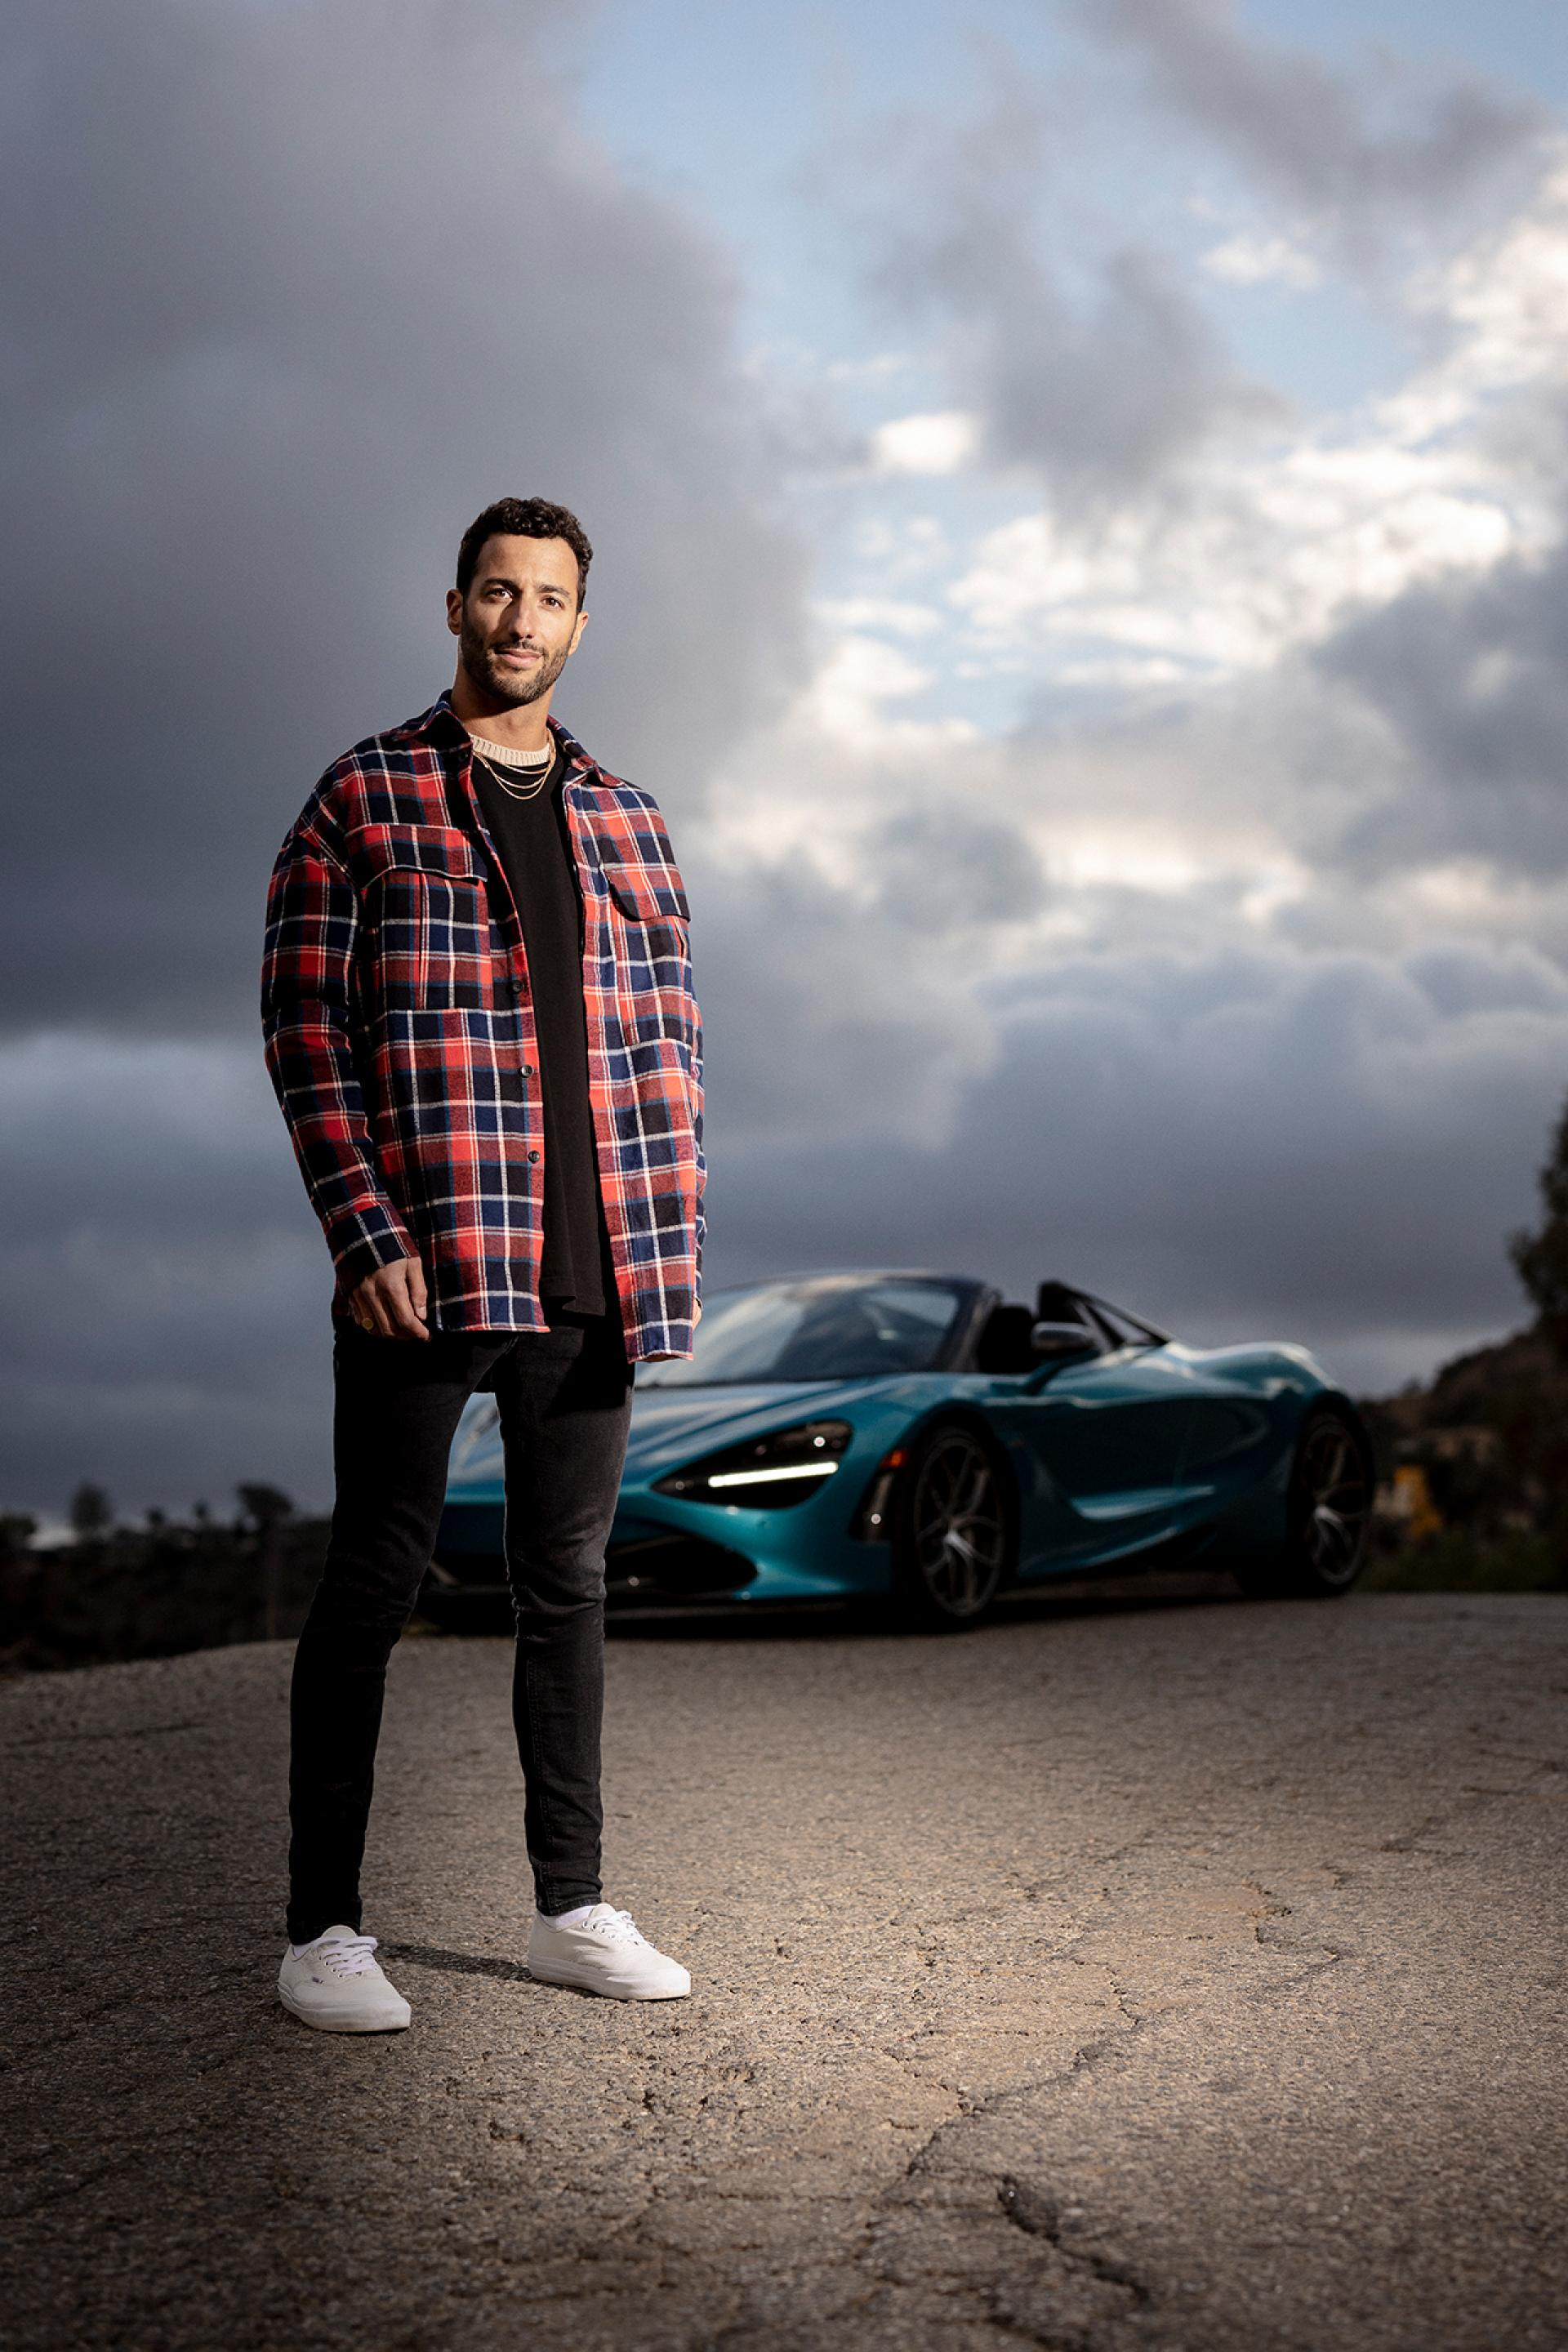 Formula One racing driver Daniel Ricciardo interview